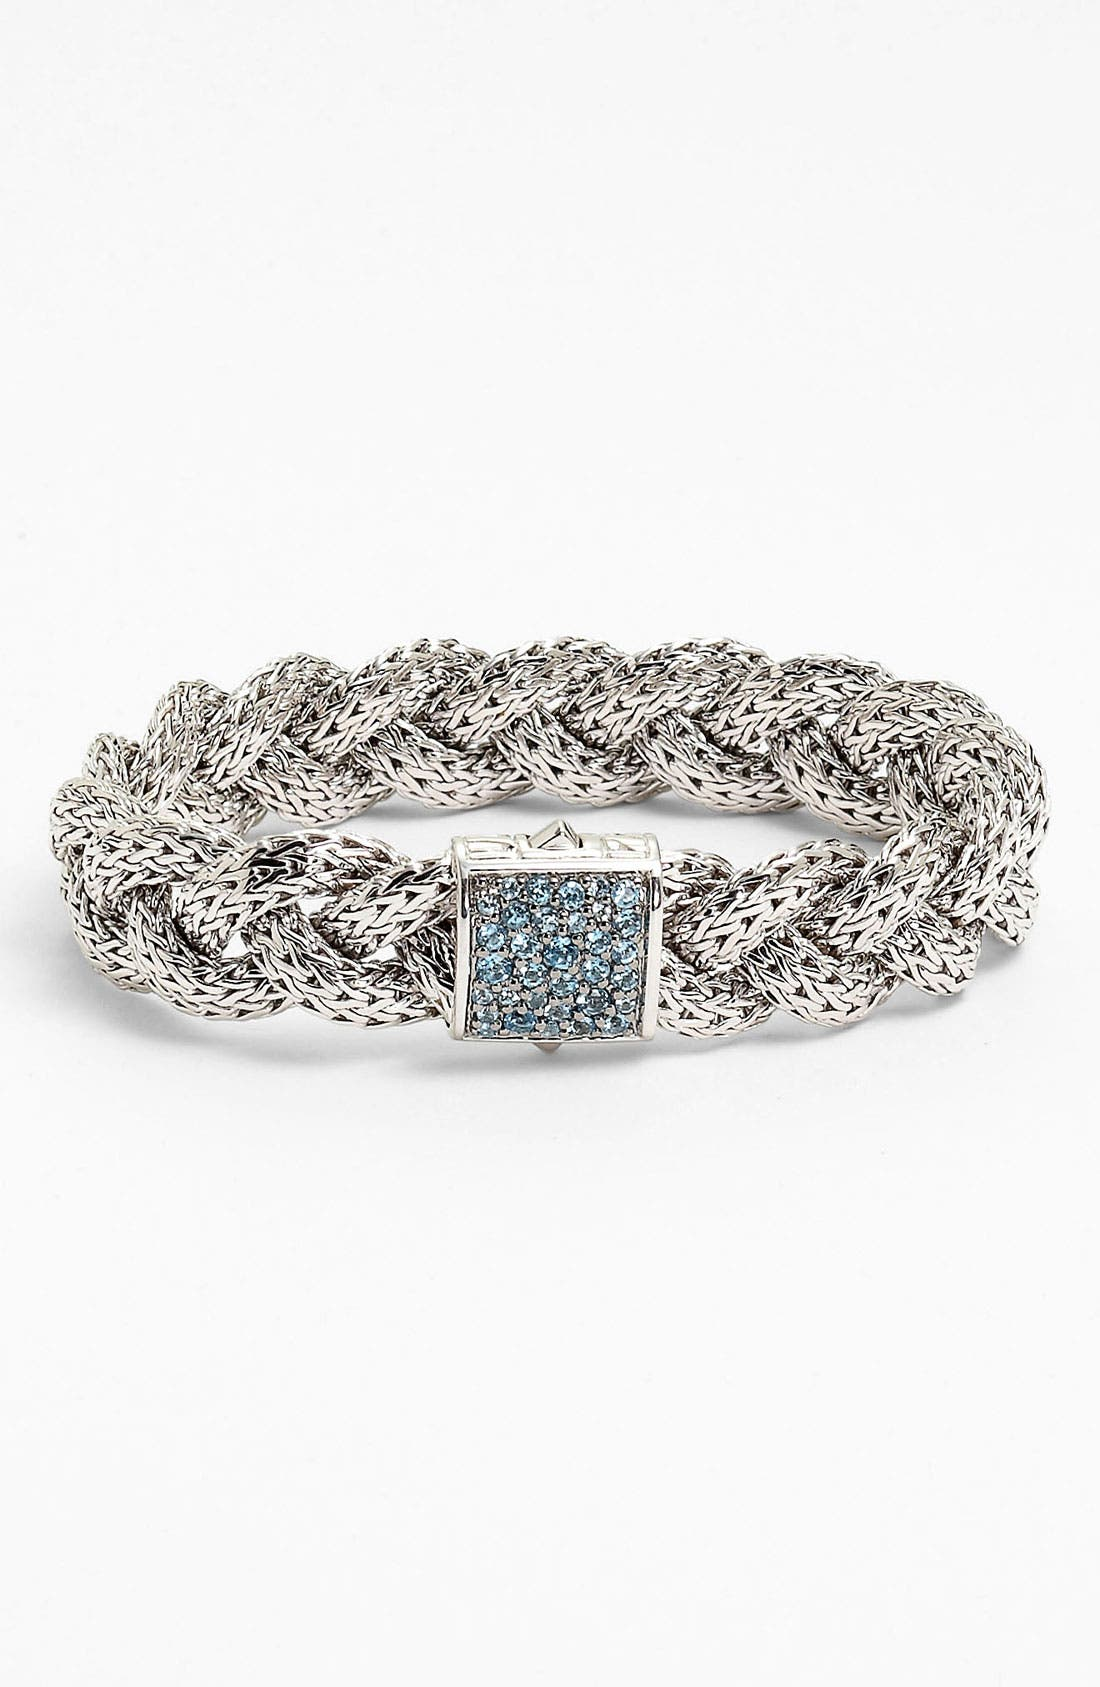 Alternate Image 1 Selected - John Hardy 'Classic Chain' Medium Braided Bracelet